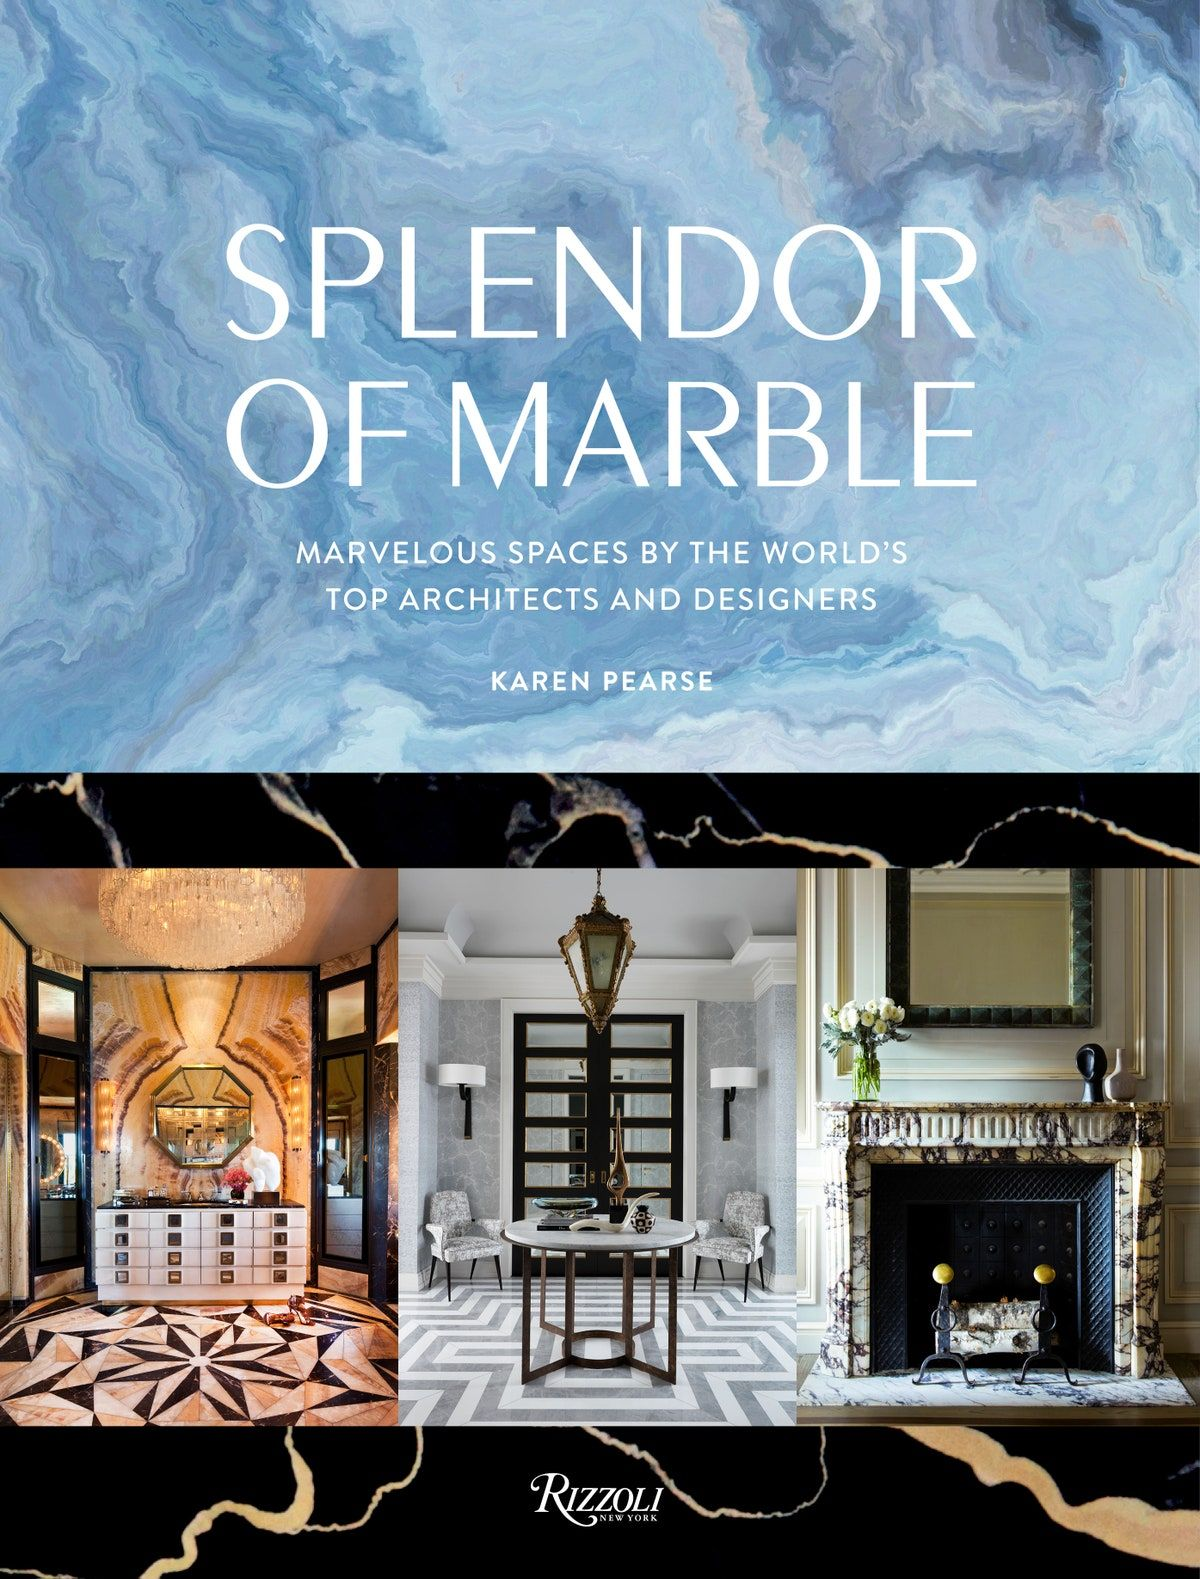 10 Reasons Marble Is More Versatile Than You Think Architectural Digest In 2020 Top Architects Architect Architectural Digest